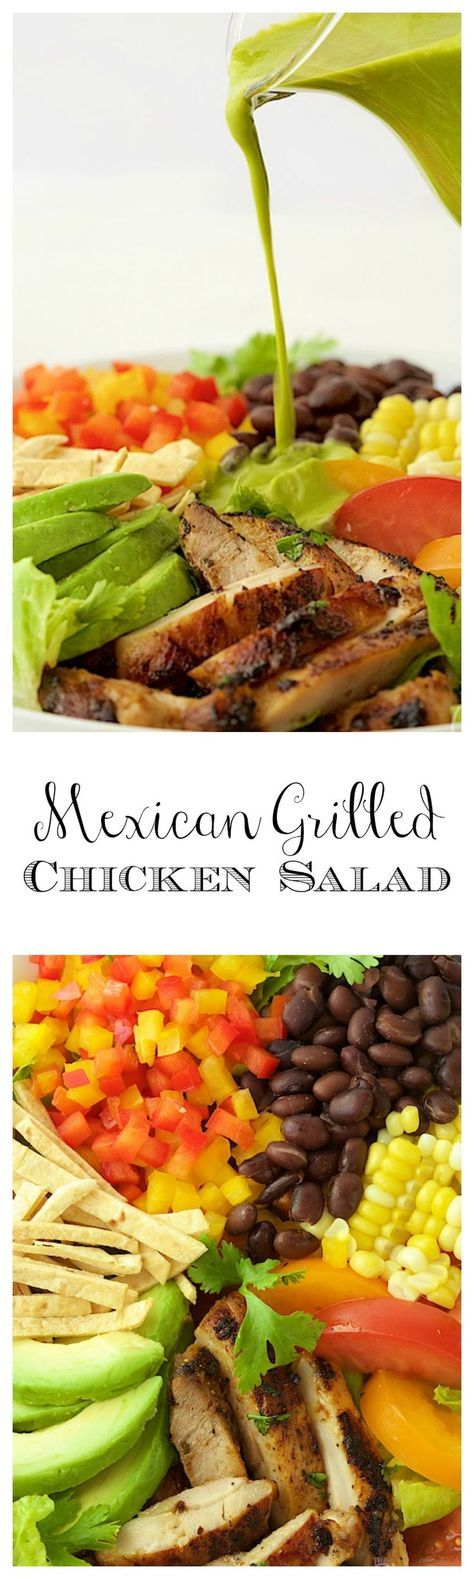 Mexican Grilled Chicken Salad - this fresh salad bursting with south-of -the-border flavor is a great way to keep meals healthy and delicious!